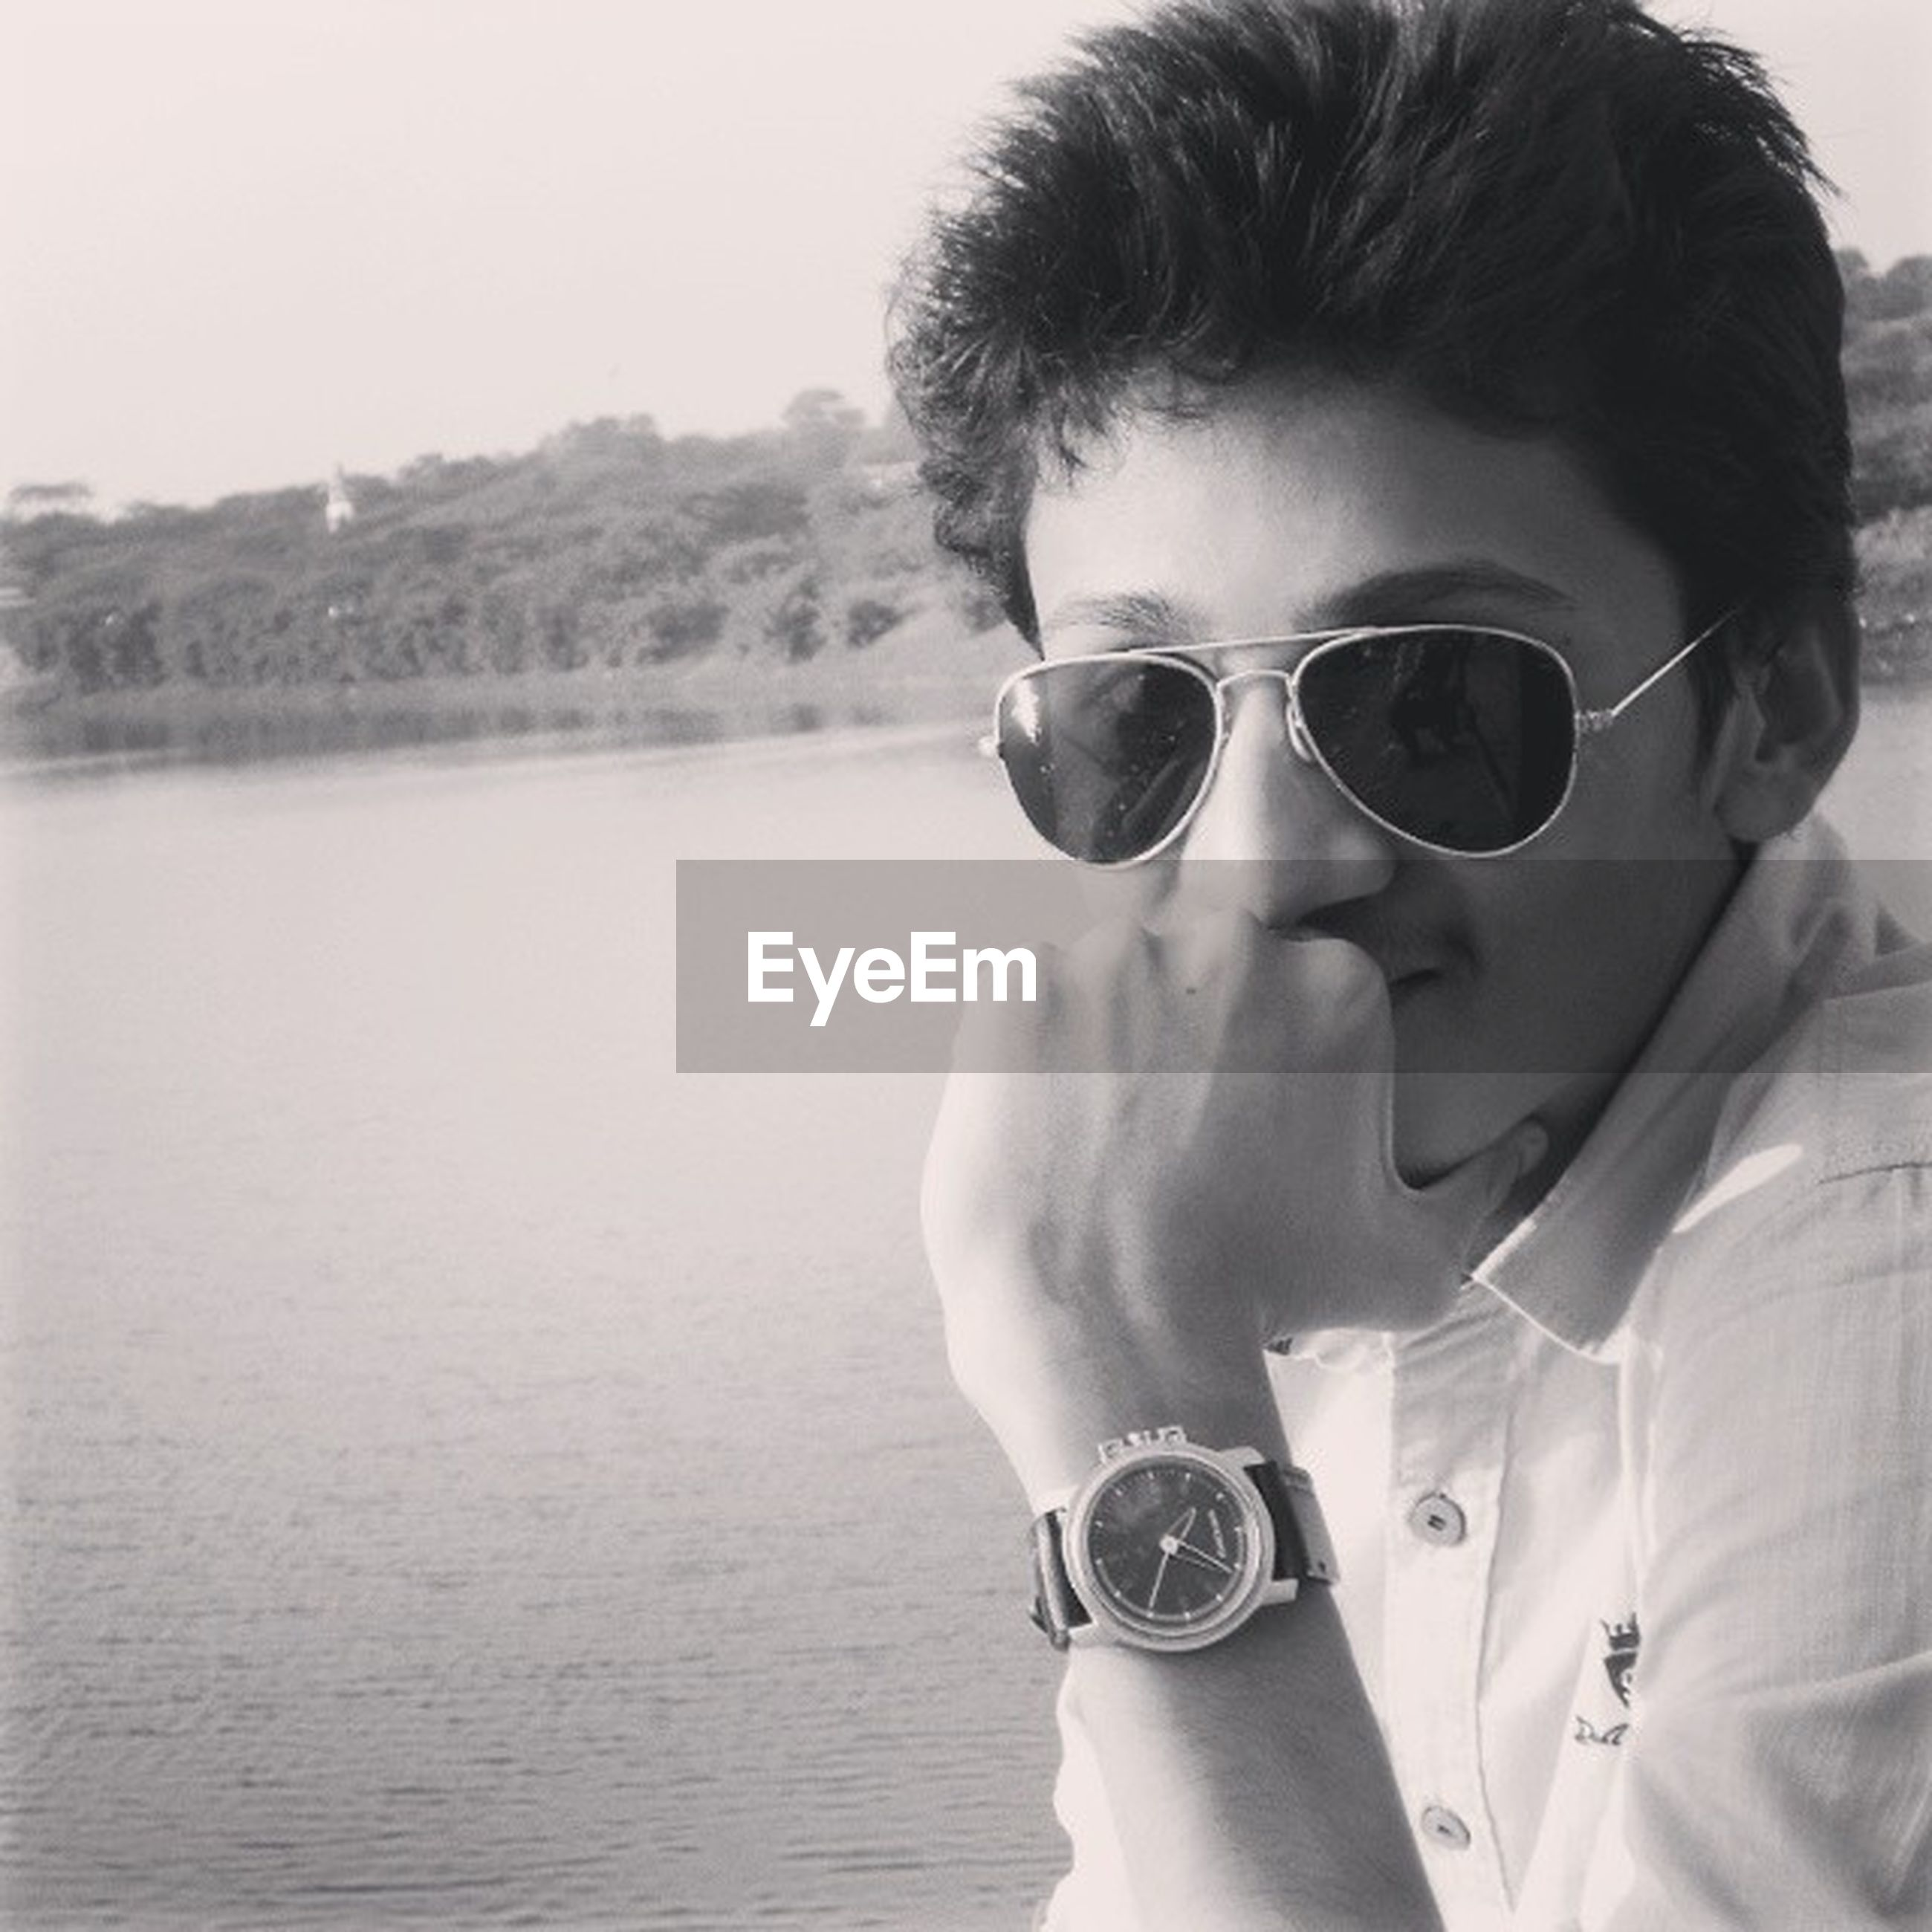 sunglasses, young adult, lifestyles, person, leisure activity, portrait, looking at camera, young men, headshot, front view, casual clothing, smiling, sky, head and shoulders, nature, water, focus on foreground